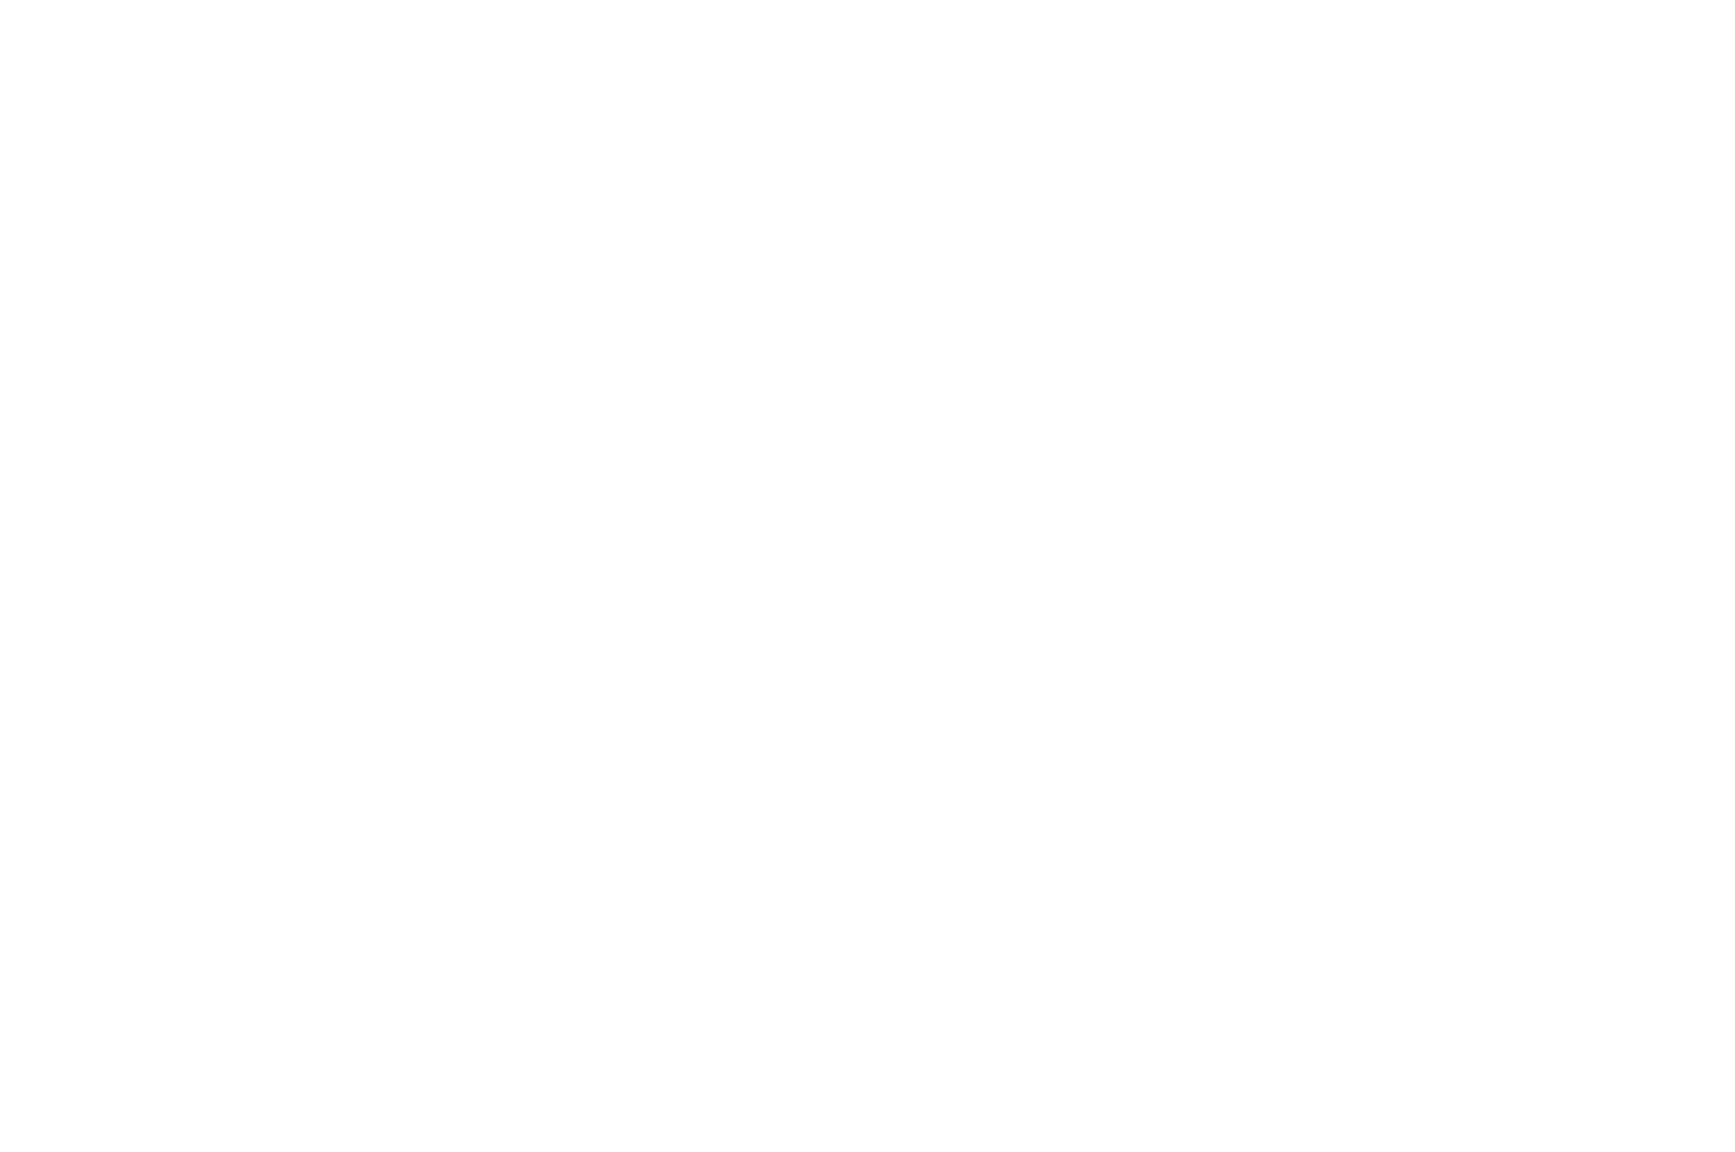 WHITE ON BLACK WINNER BEST ENSEMBLE - FEARnyc Film Festival - 2016.png